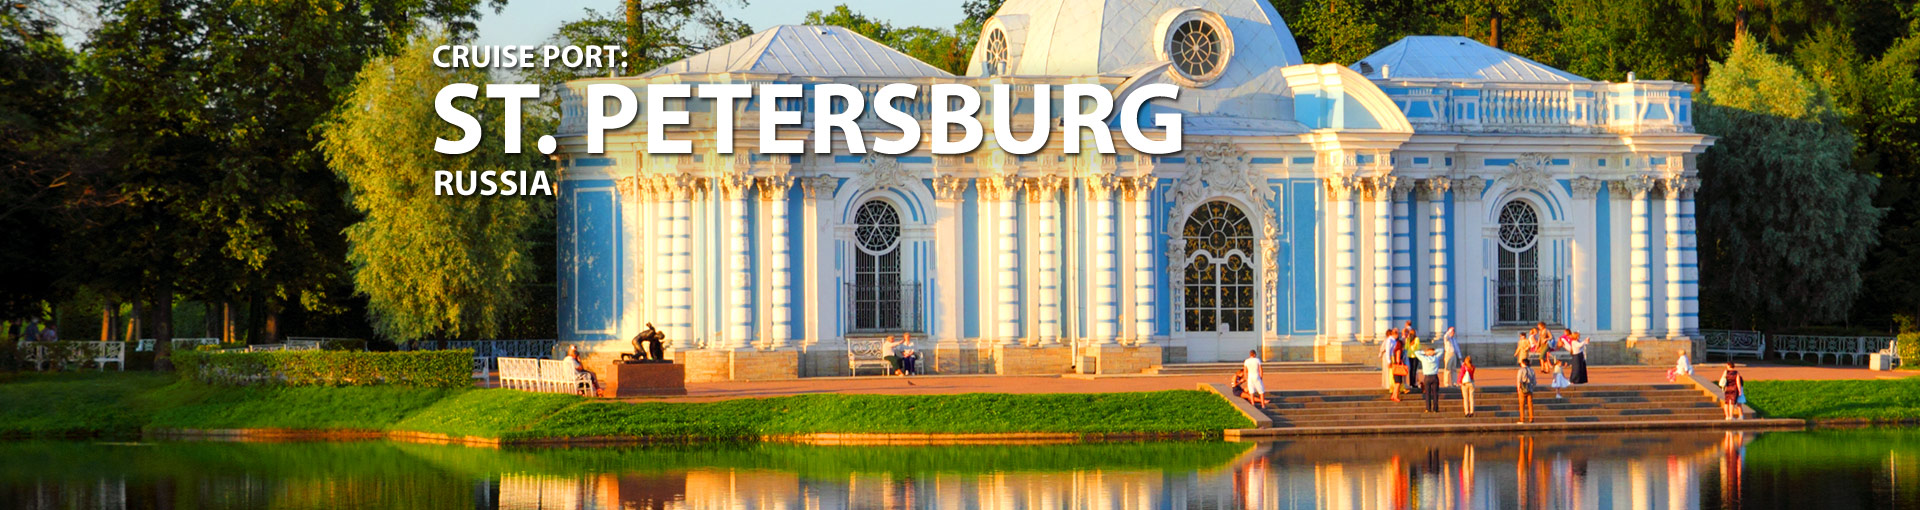 Cruises from St. Petersburg, Russia